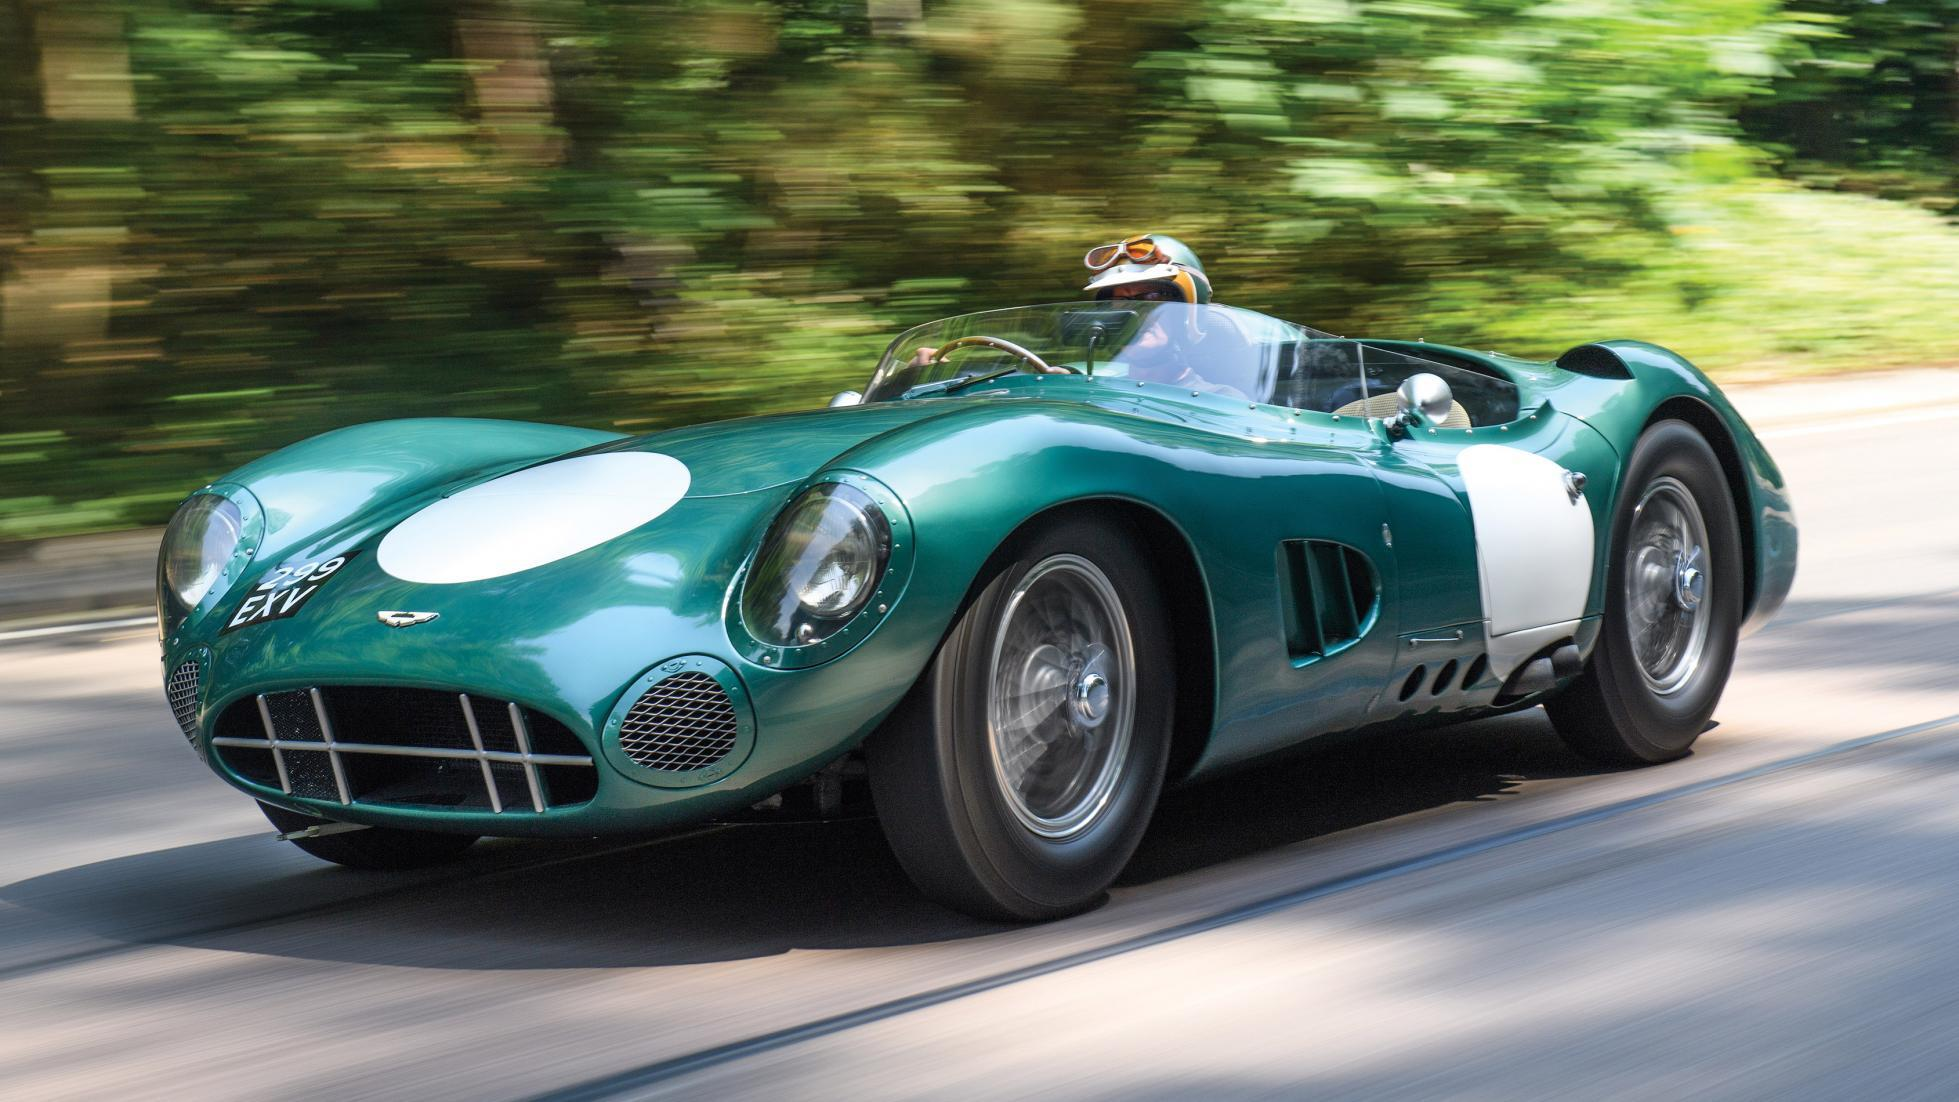 This Aston Martin DBR1 is the most expensive British car sold at auction